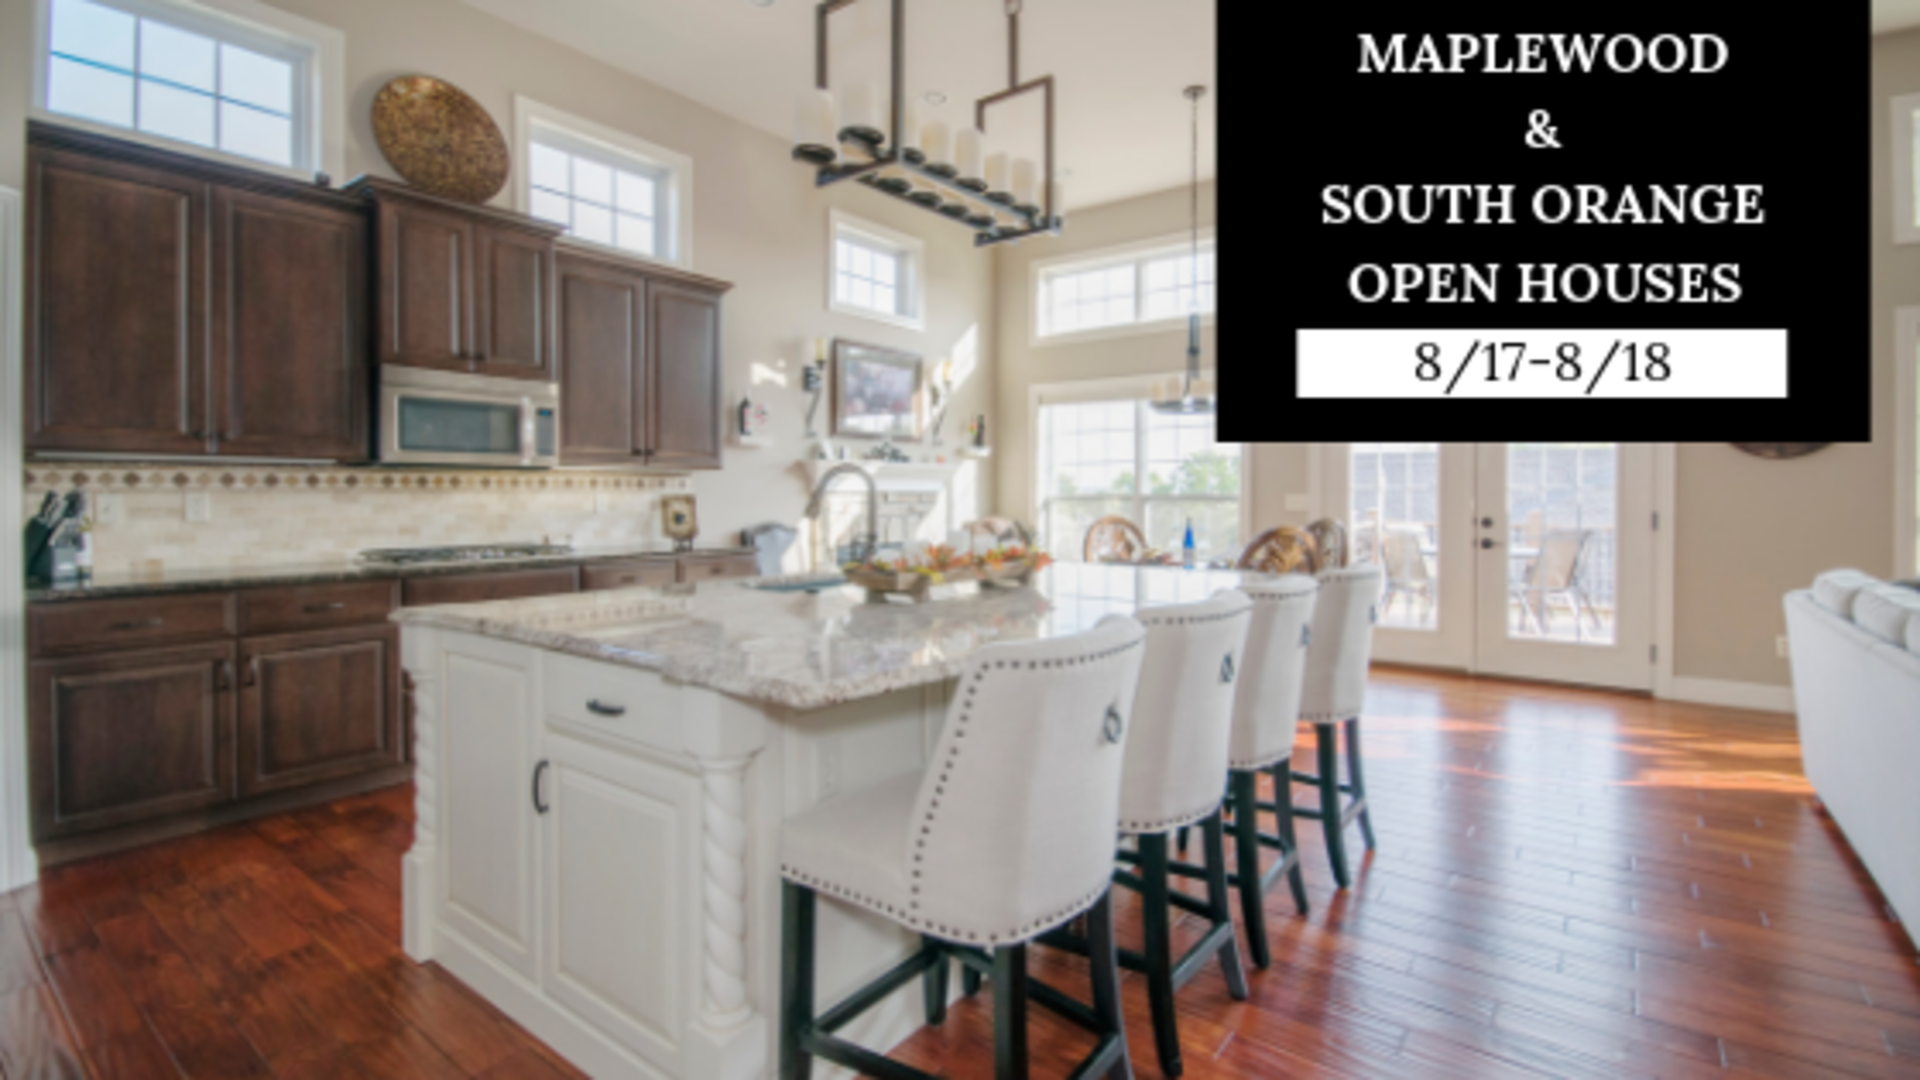 Maplewood & South Orange Open Houses – Sat & Sun, 8/17-8/18